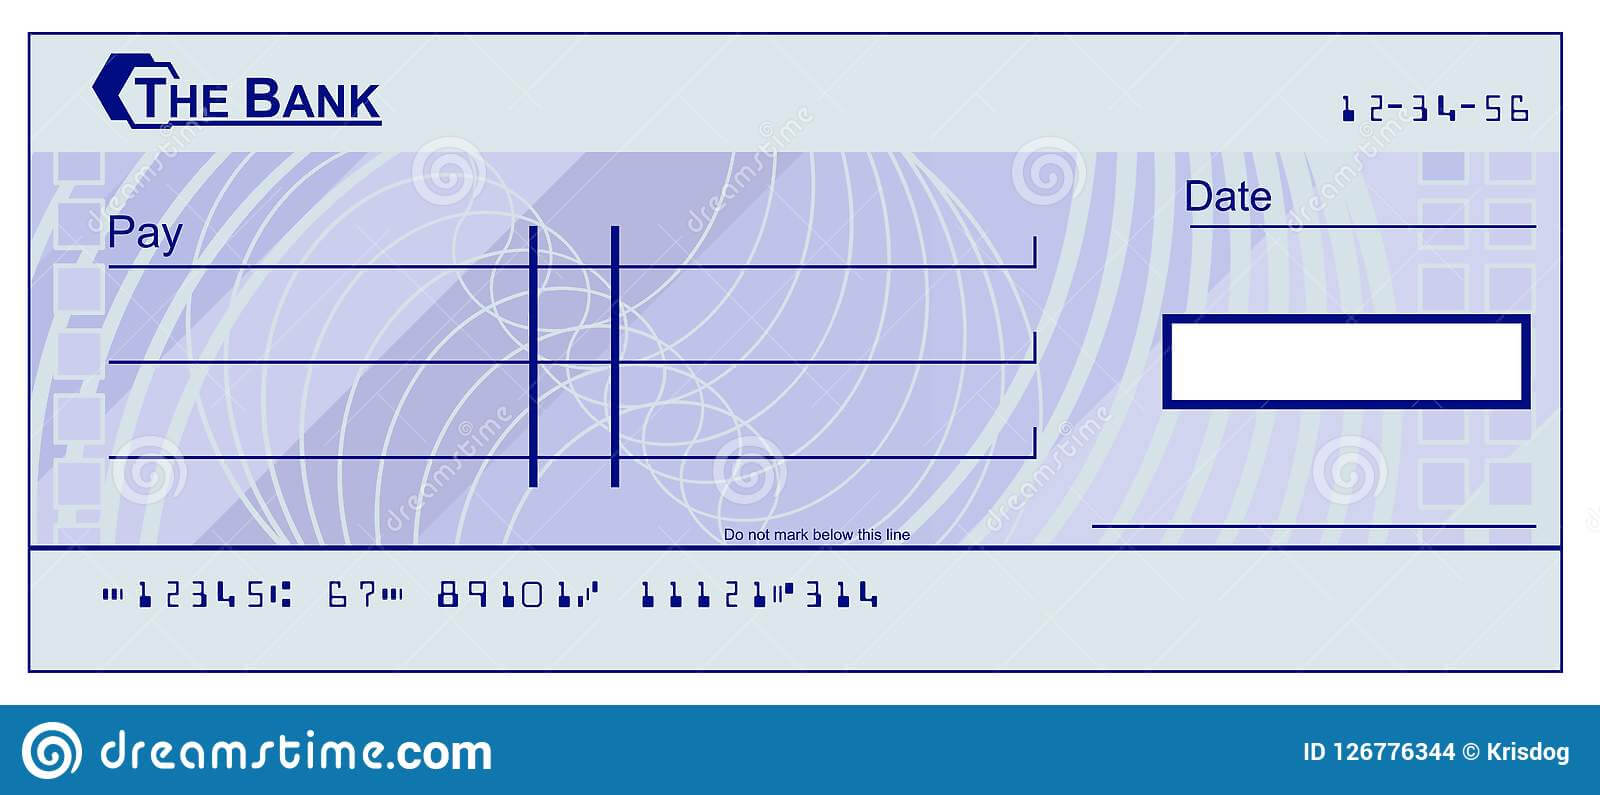 Blank Cheque Stock Vector. Illustration Of Design, Blue within Blank Cheque Template Download Free